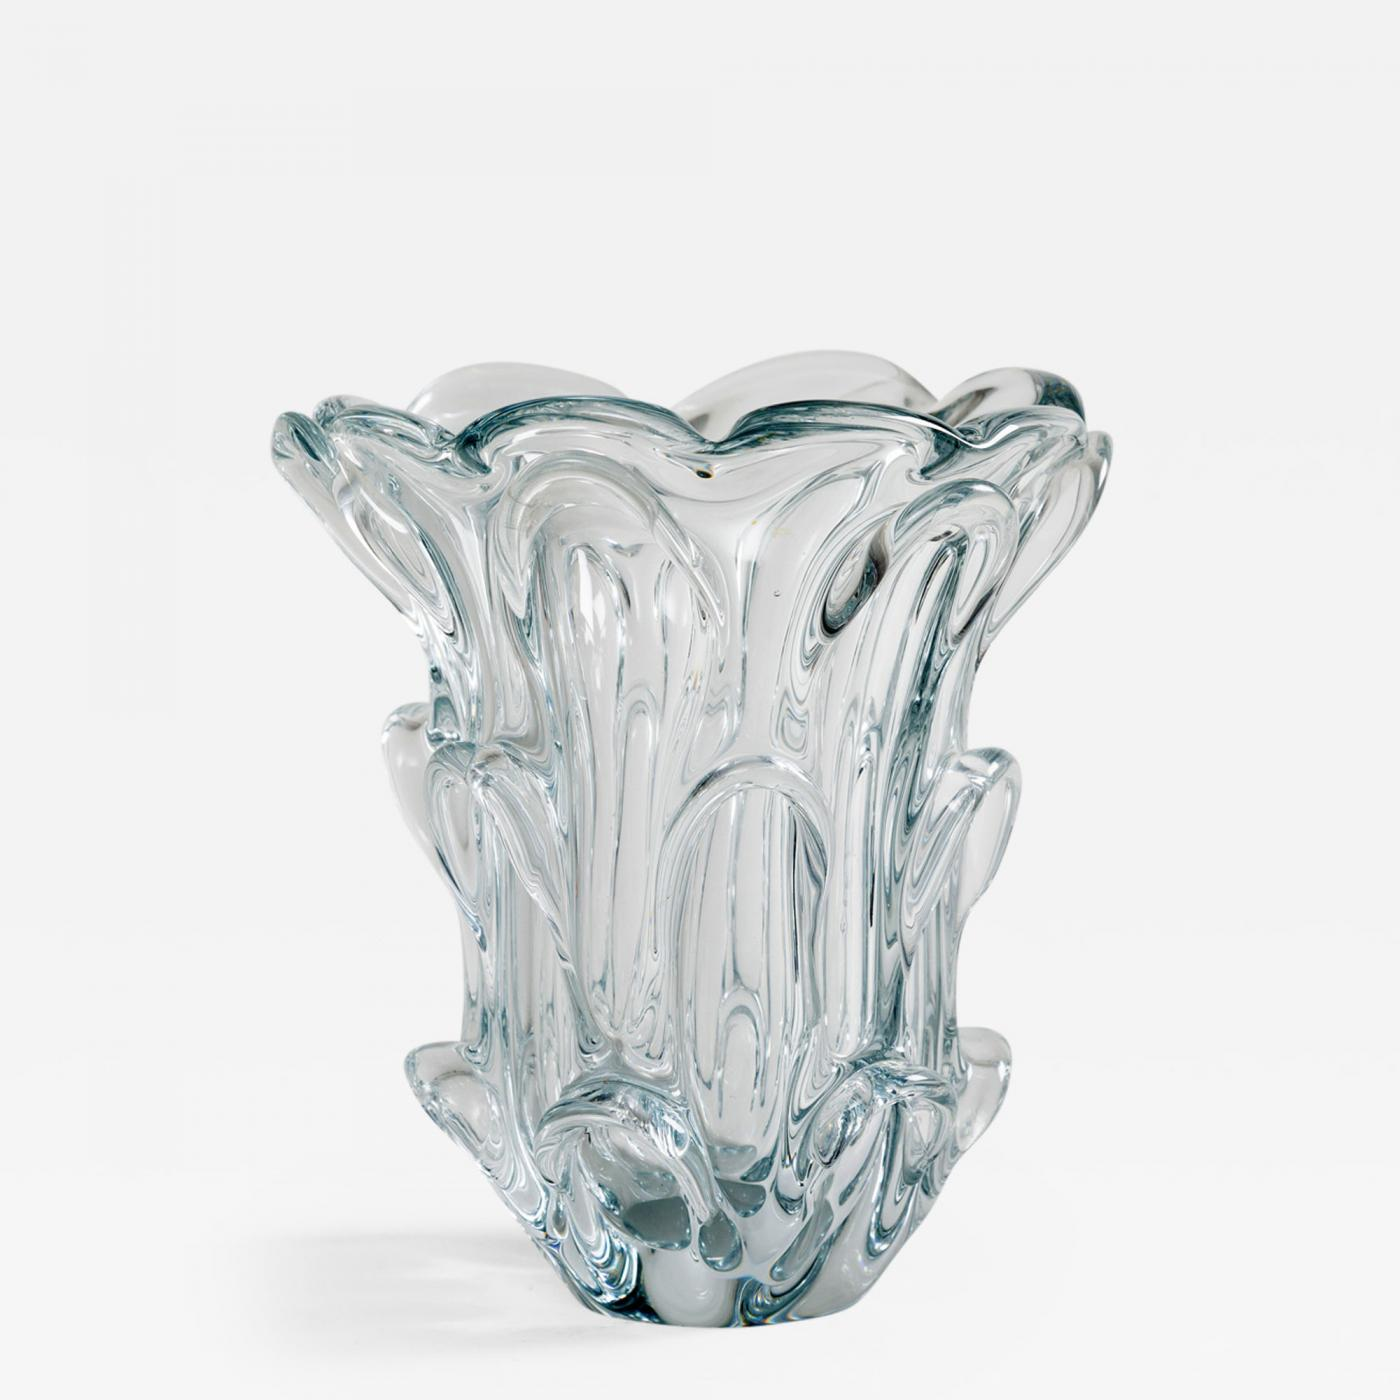 Guido bon val st lambert crystal glass vase by guido bon listings decorative arts objects vases jars urns reviewsmspy